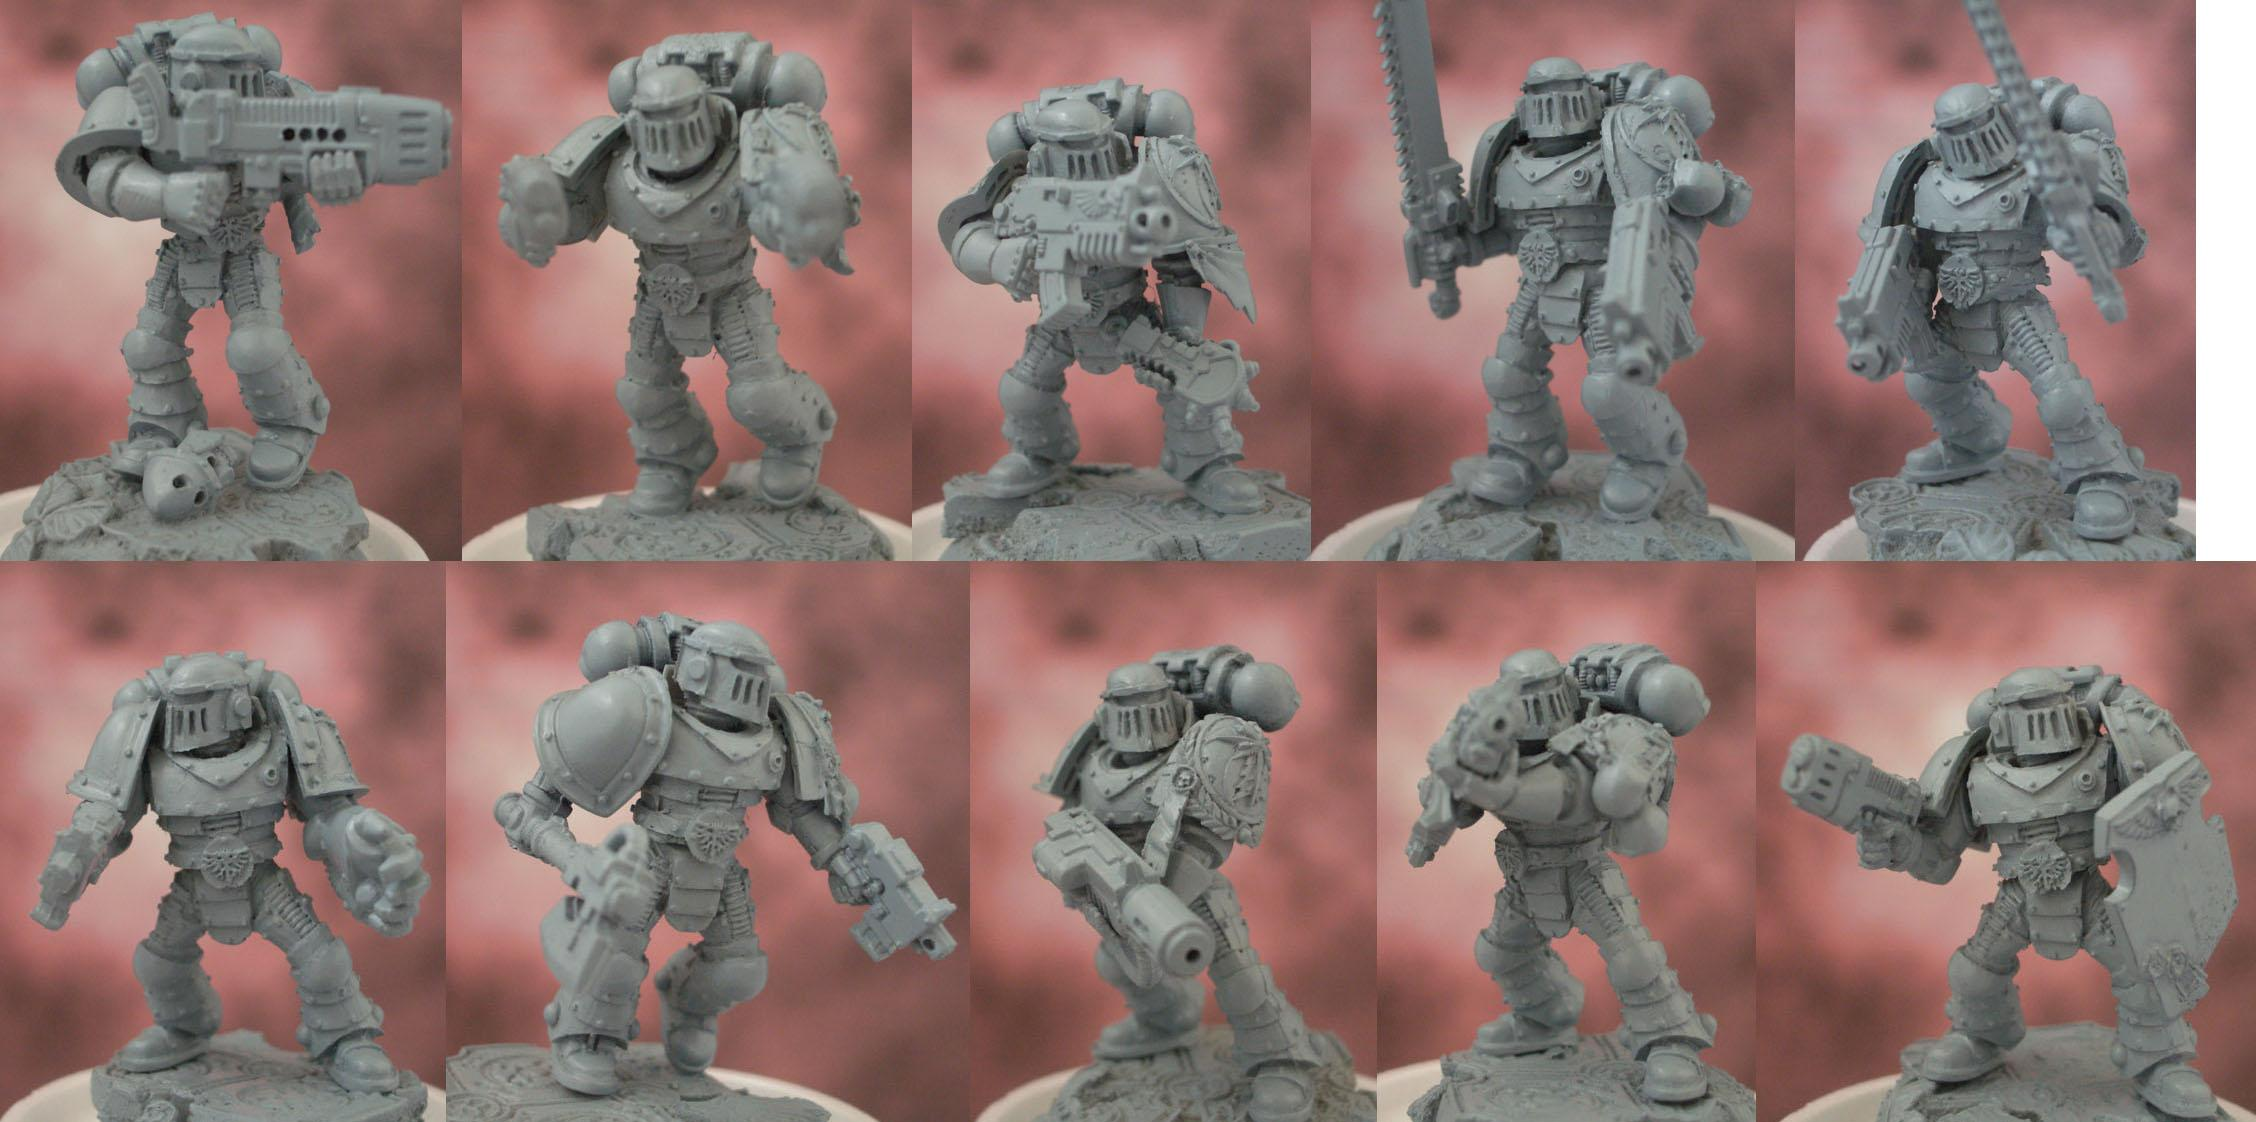 Astral, Astral Claws, Claws, Space Marines, Warhammer 40,000, Work In Progress